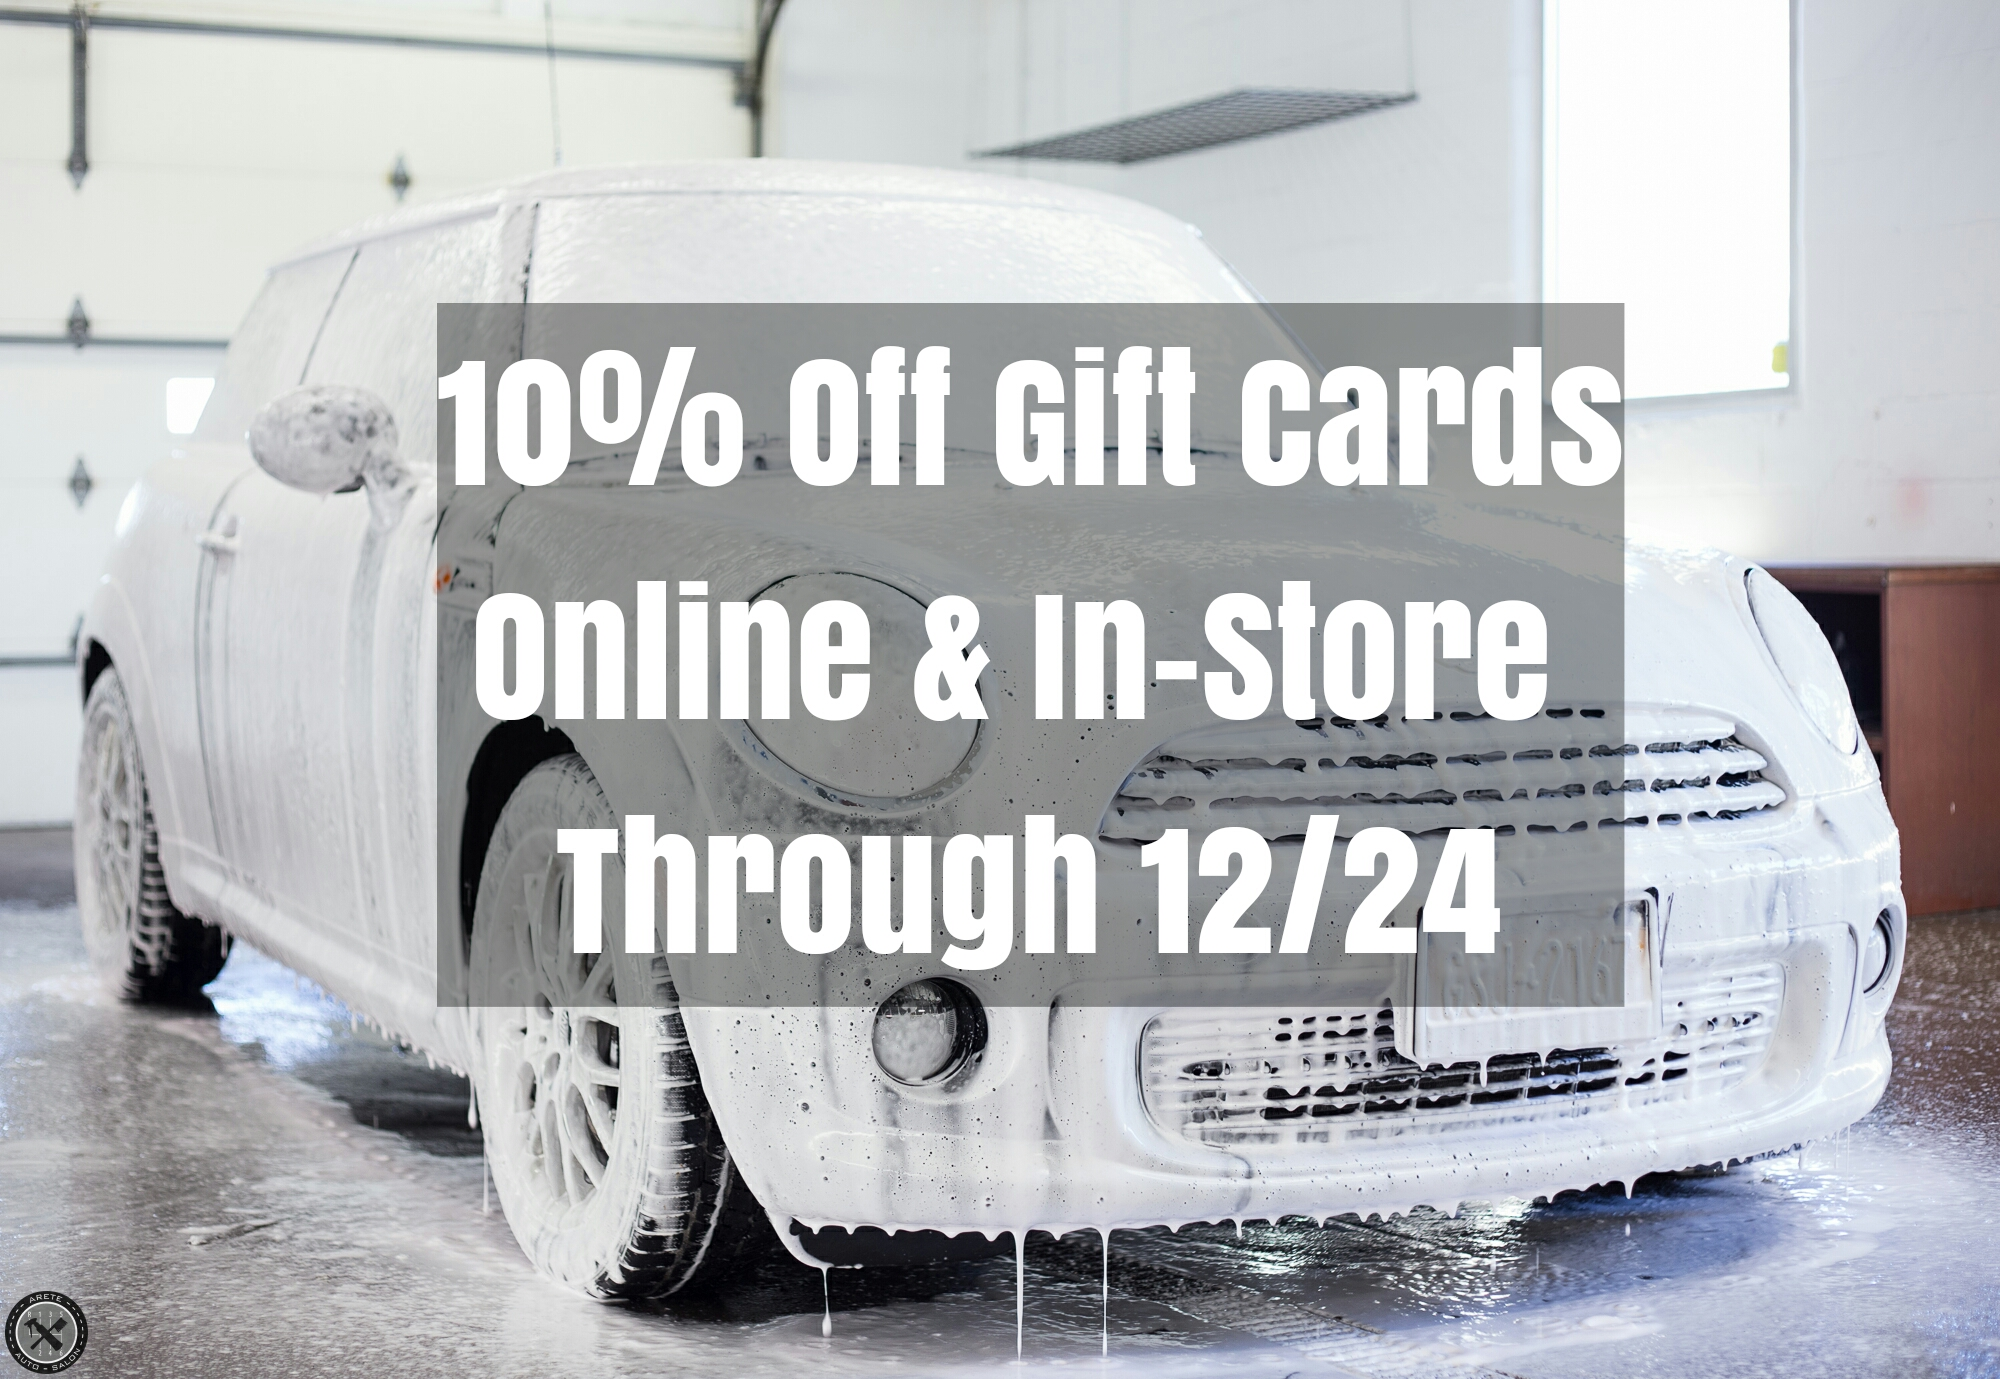 We will be closed 12/24 for Christmas eve but the sale will still be on online!